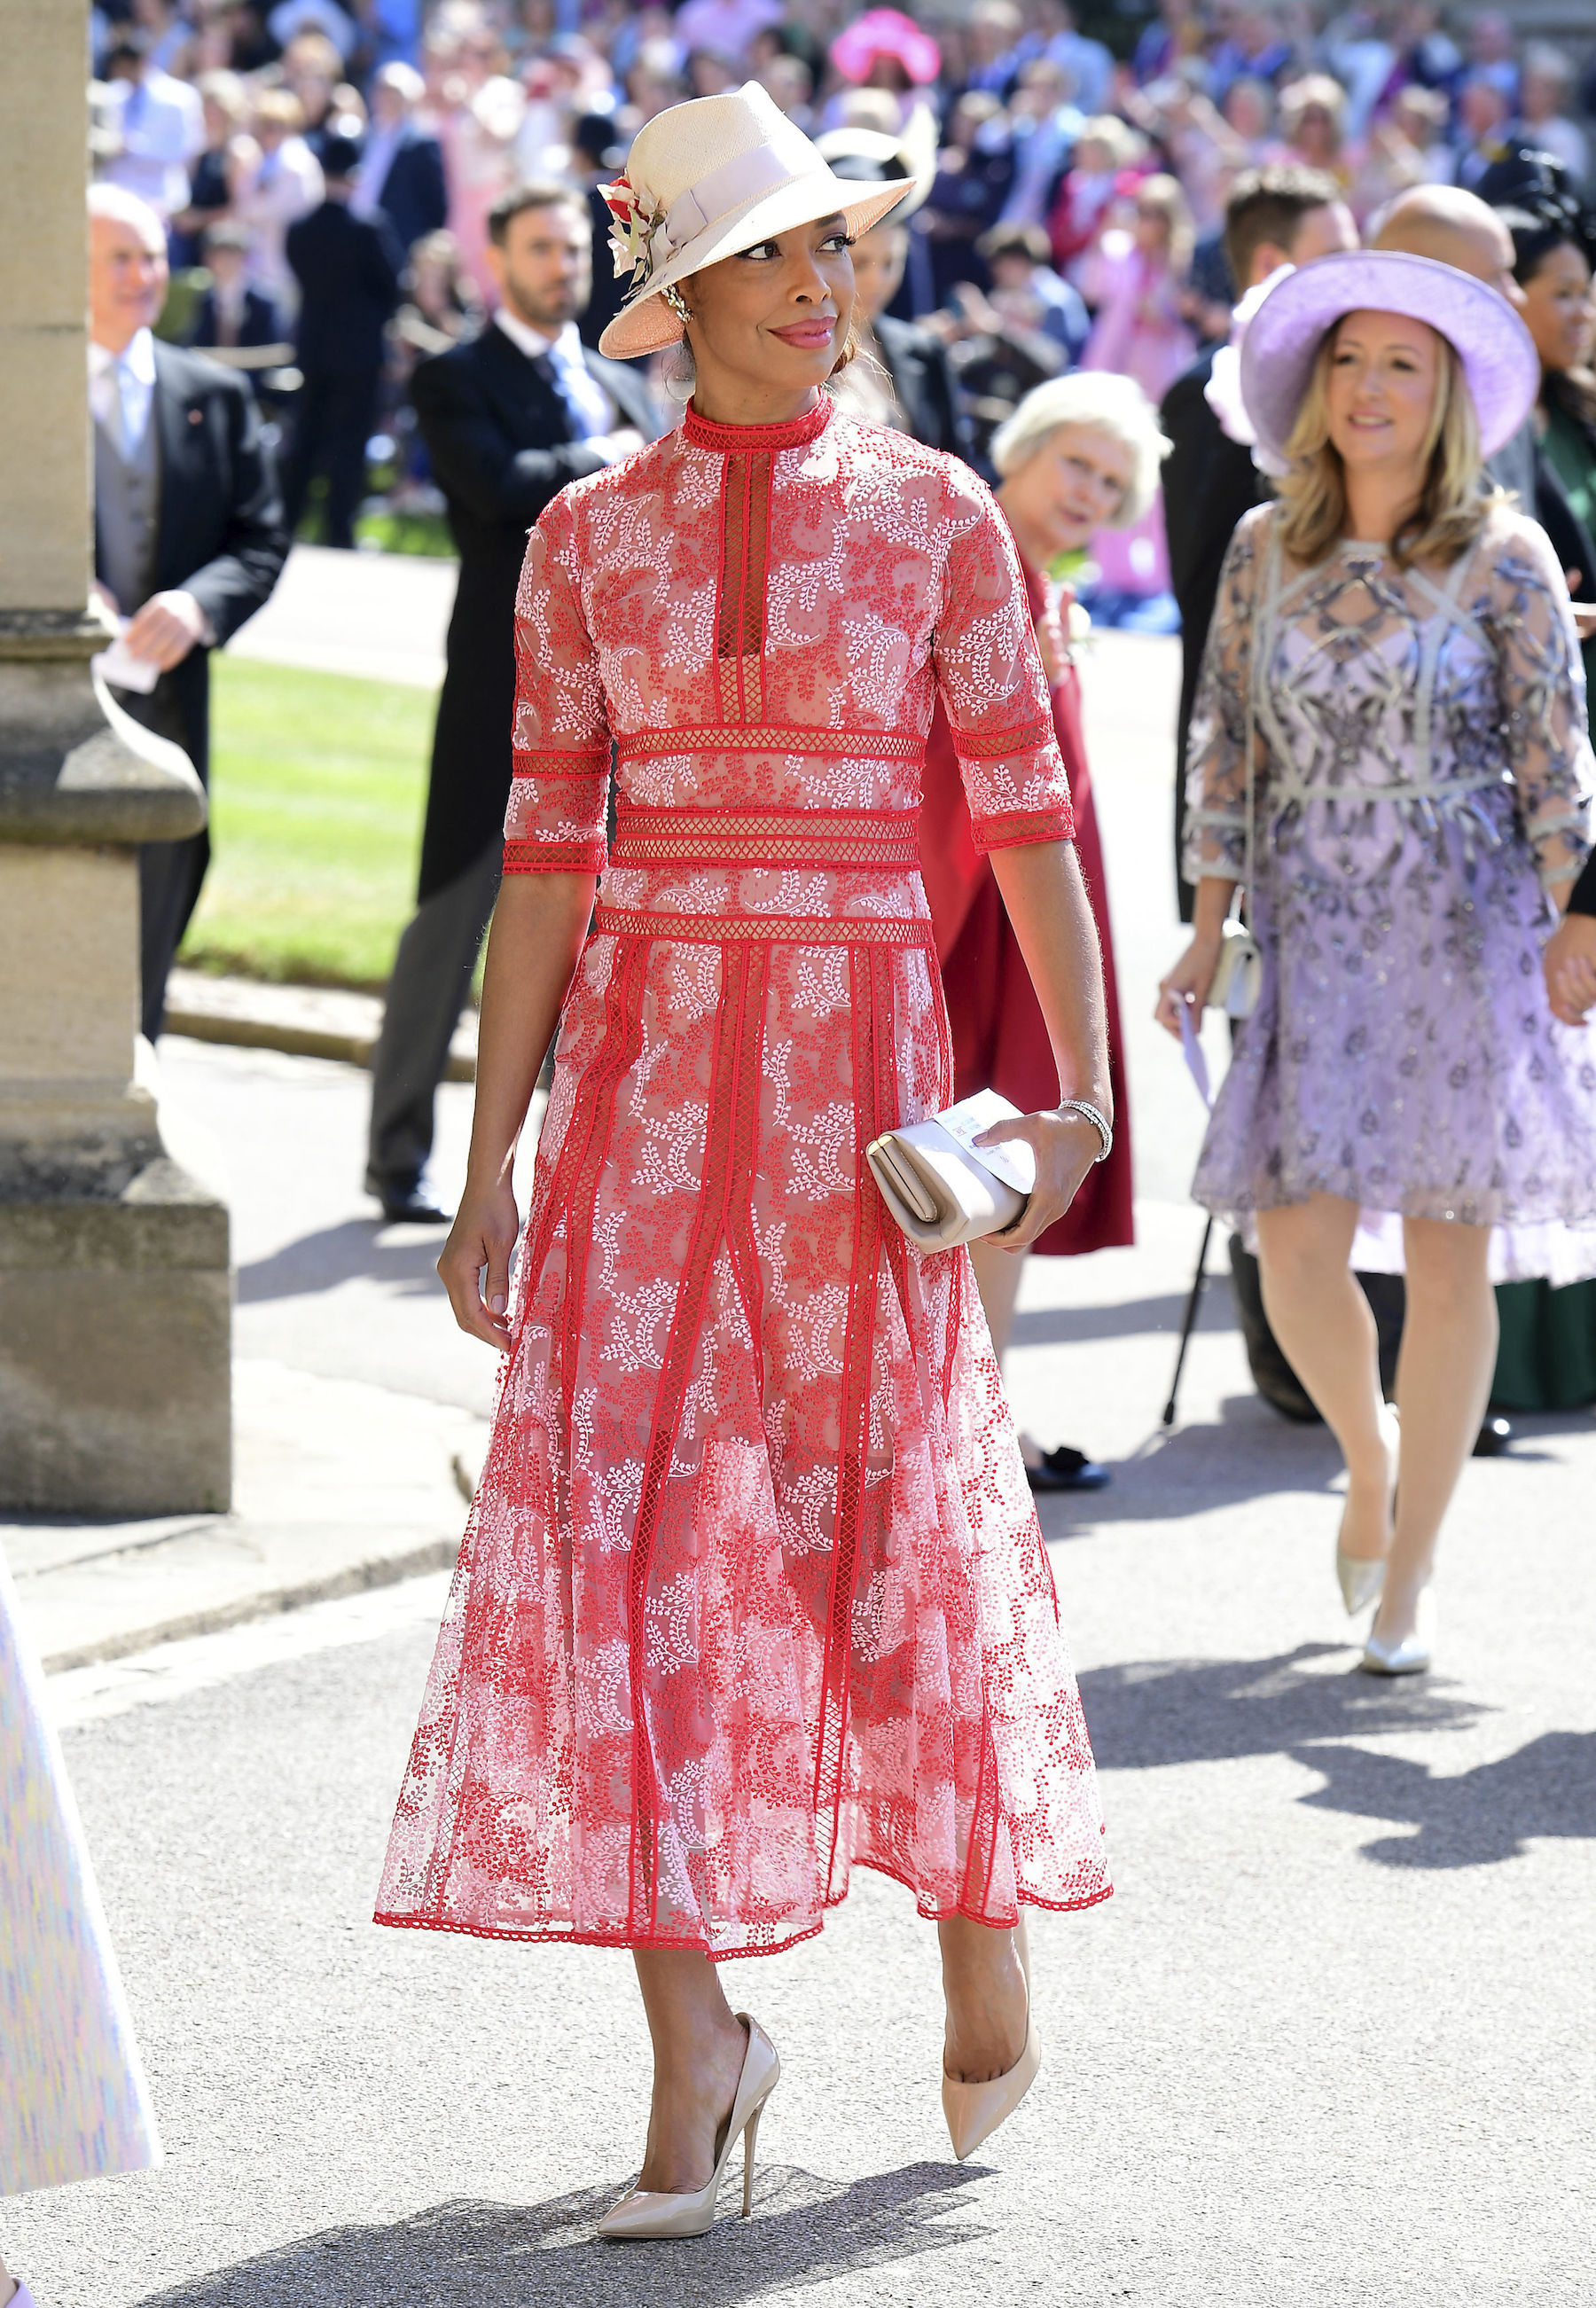 "<div class=""meta image-caption""><div class=""origin-logo origin-image ap""><span>AP</span></div><span class=""caption-text"">Gina Torres arrives at St George's Chapel at Windsor Castle for the wedding of Meghan Markle and Prince Harry. (Ian West/PA Wire)</span></div>"